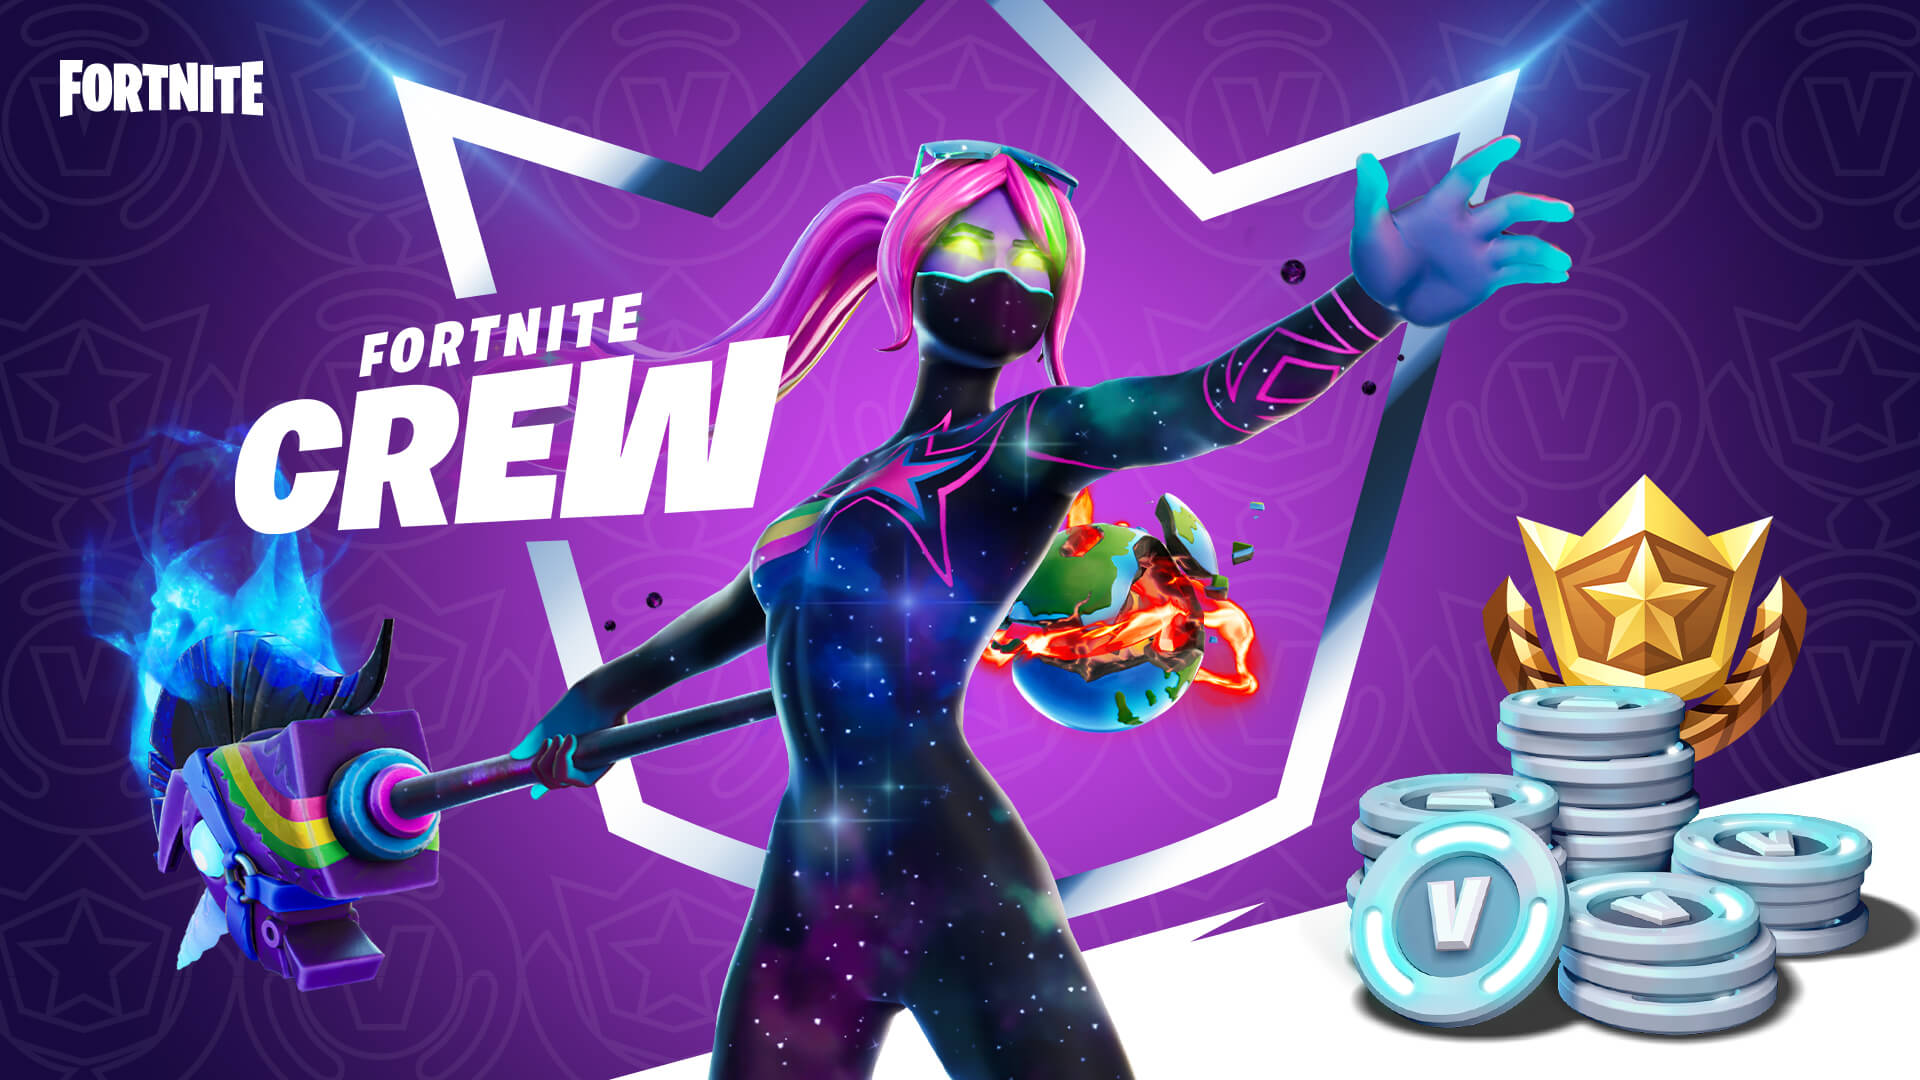 New Fortnite Season 5 release date and start time potentially leaked